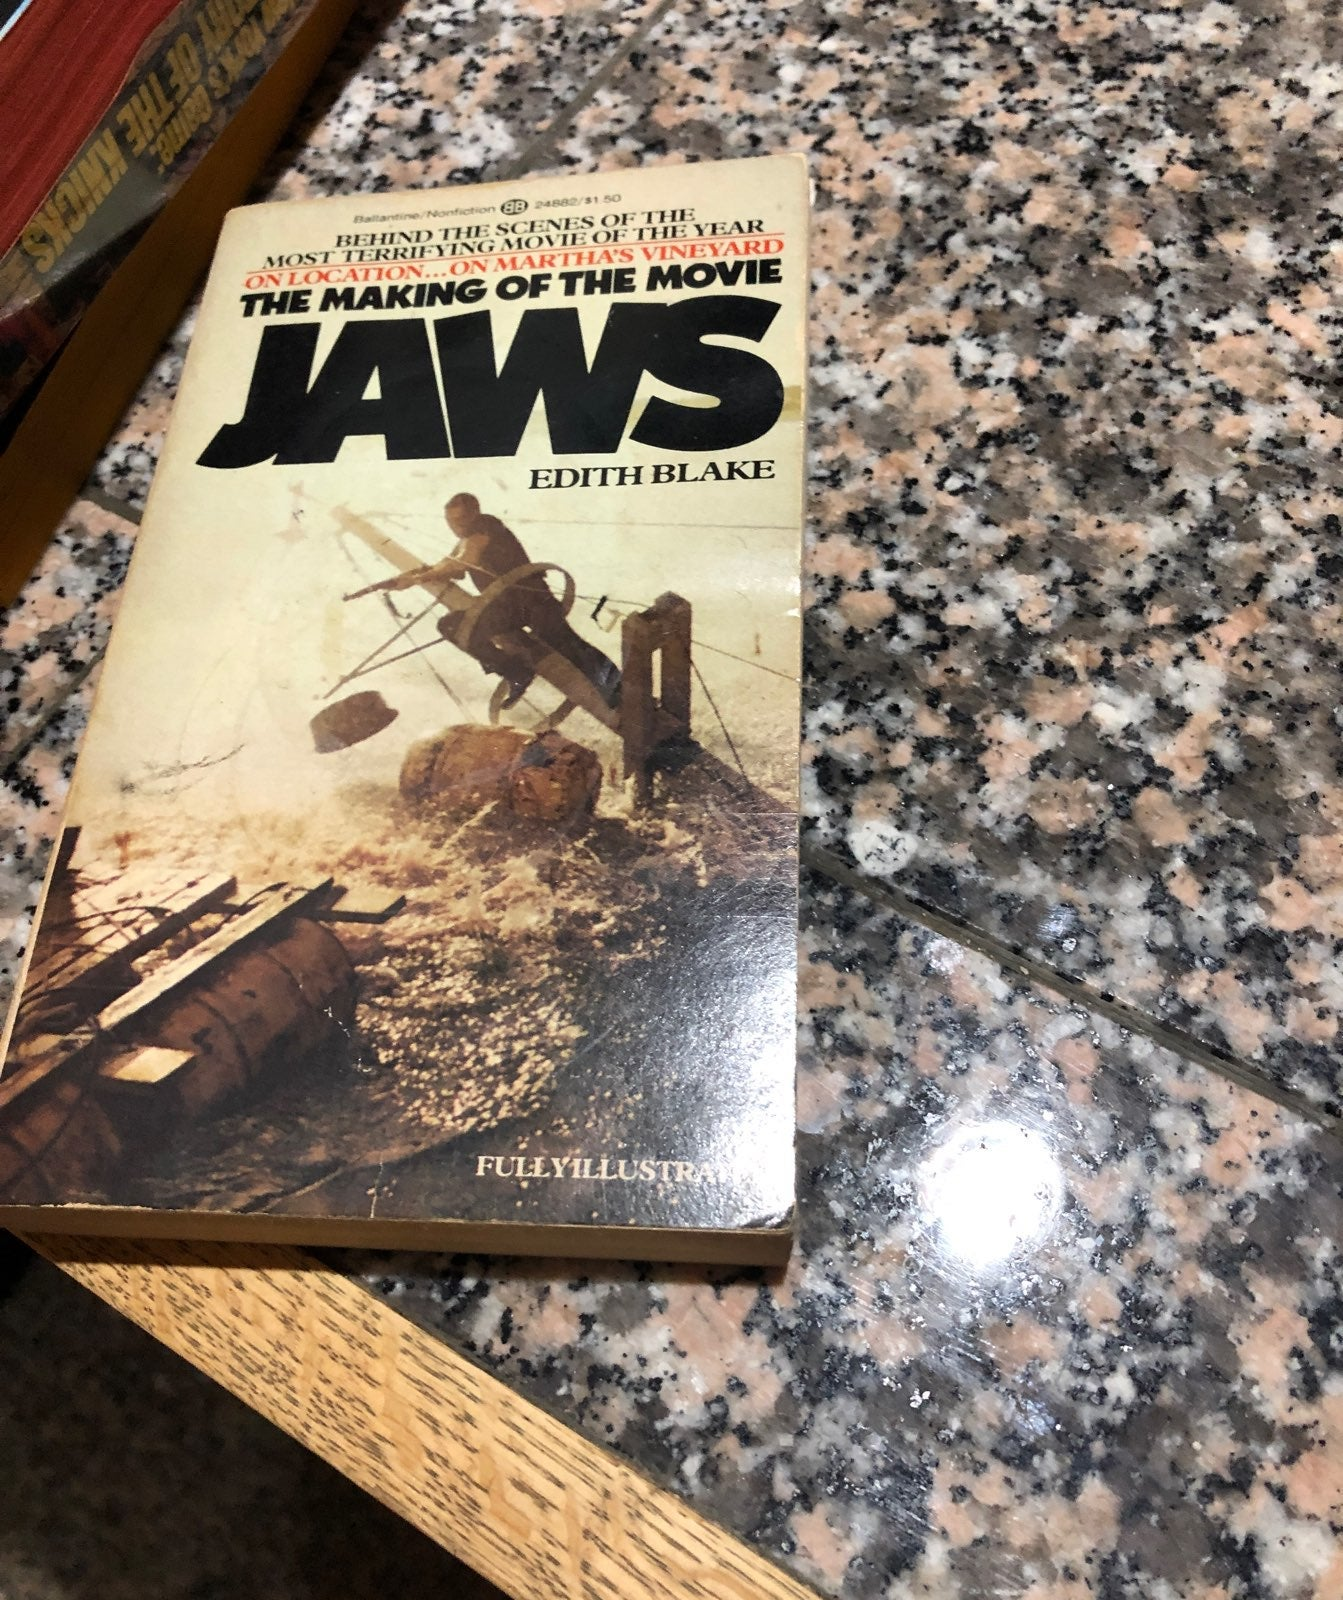 The making of the movie jaws, by edith b